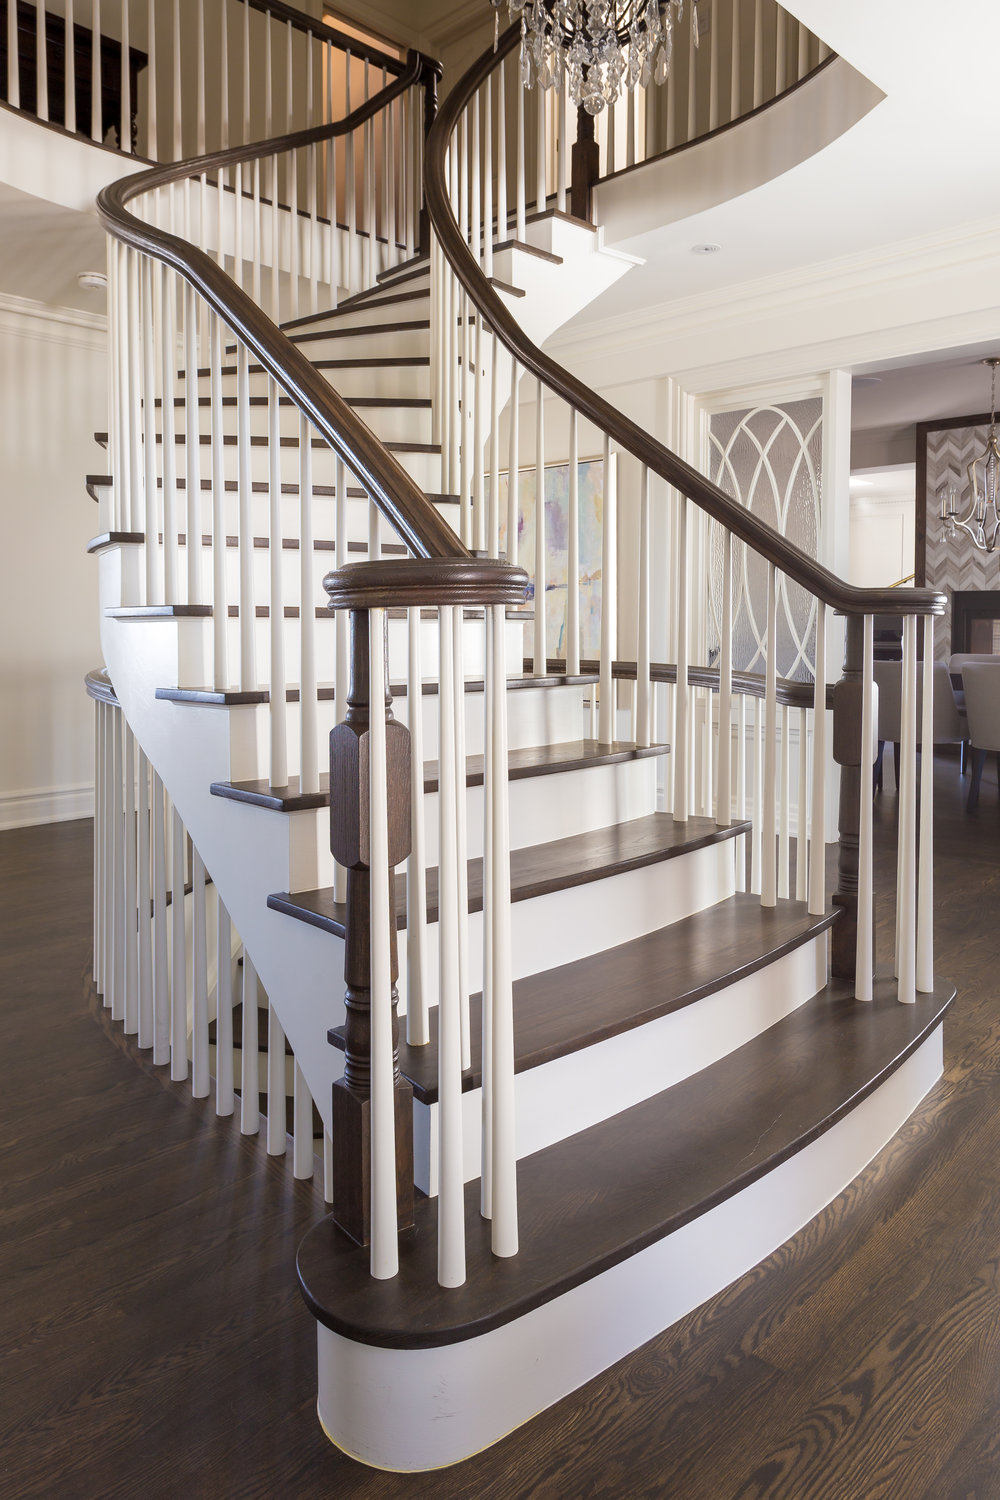 oakville-interior design-staircase-painted-wood-curved-robson hallford